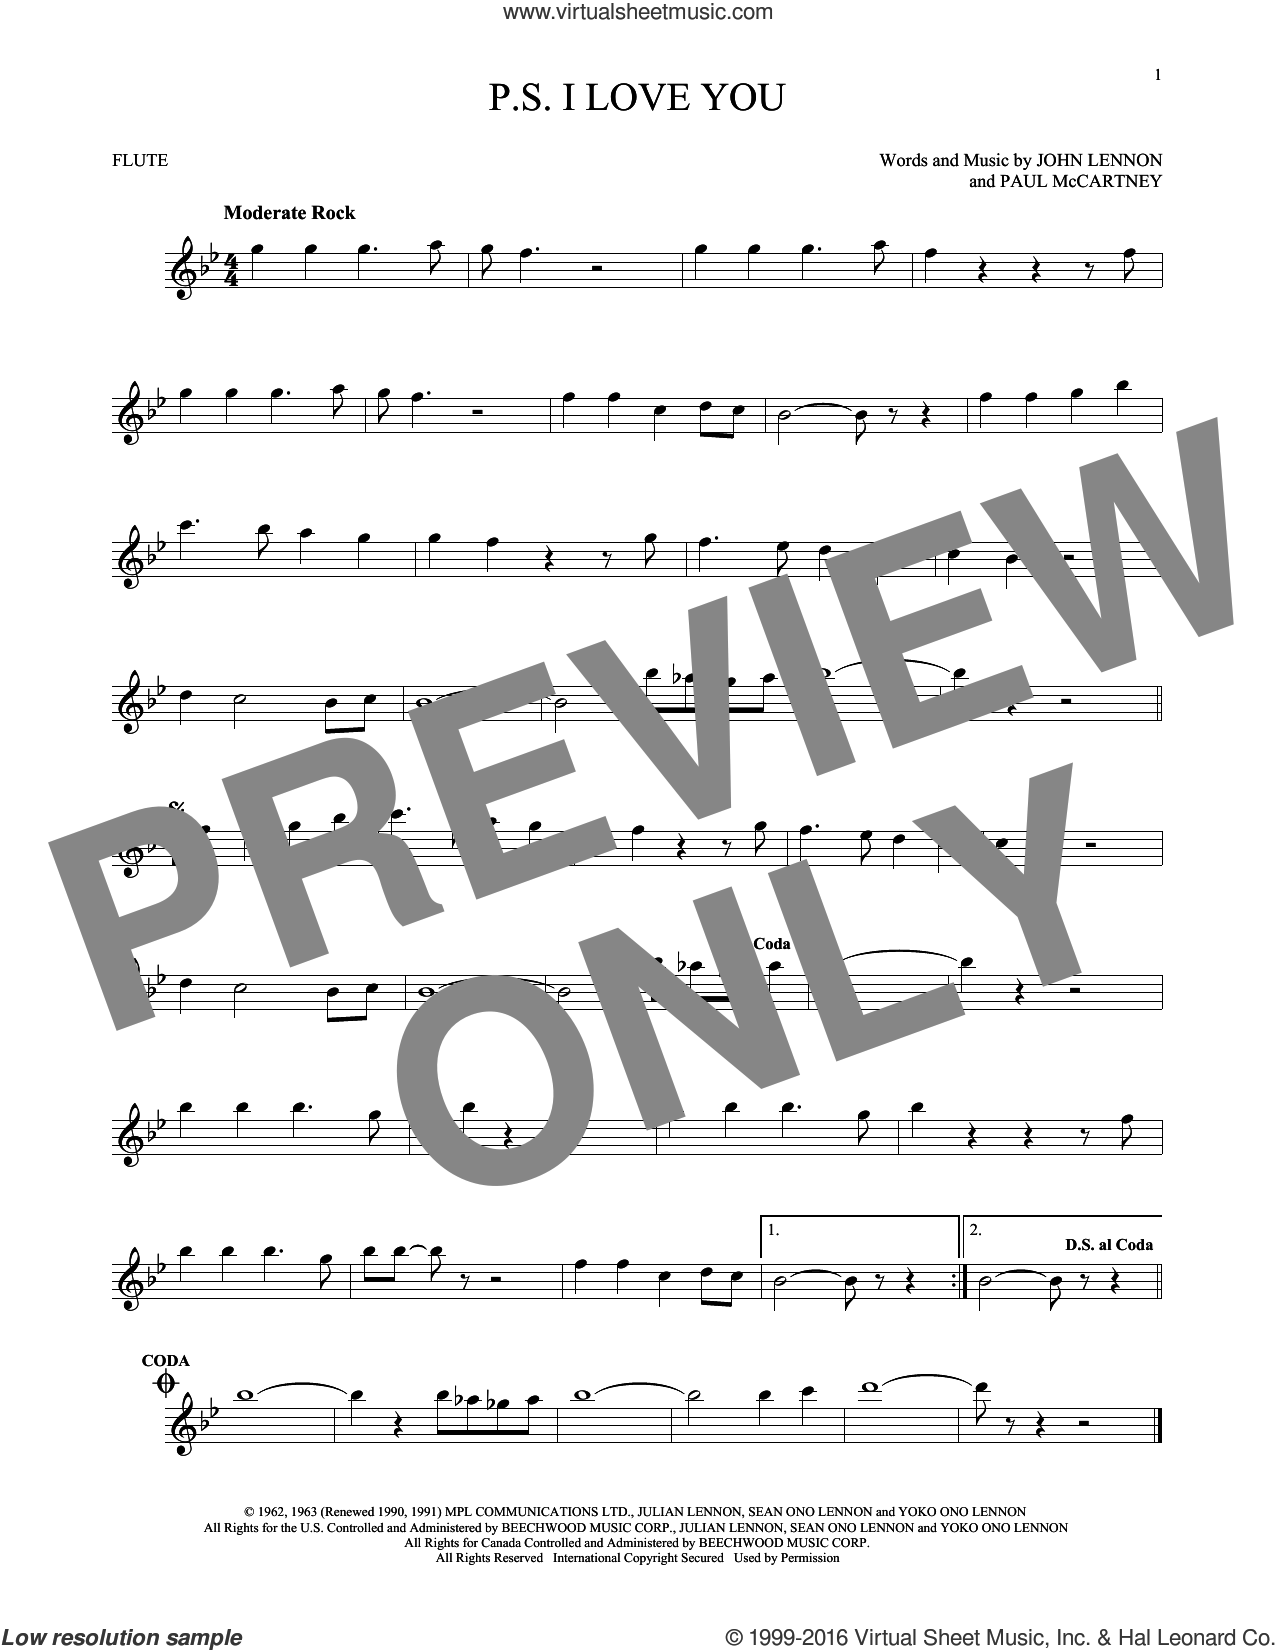 P.S. I Love You sheet music for flute solo by The Beatles, John Lennon and Paul McCartney, intermediate skill level